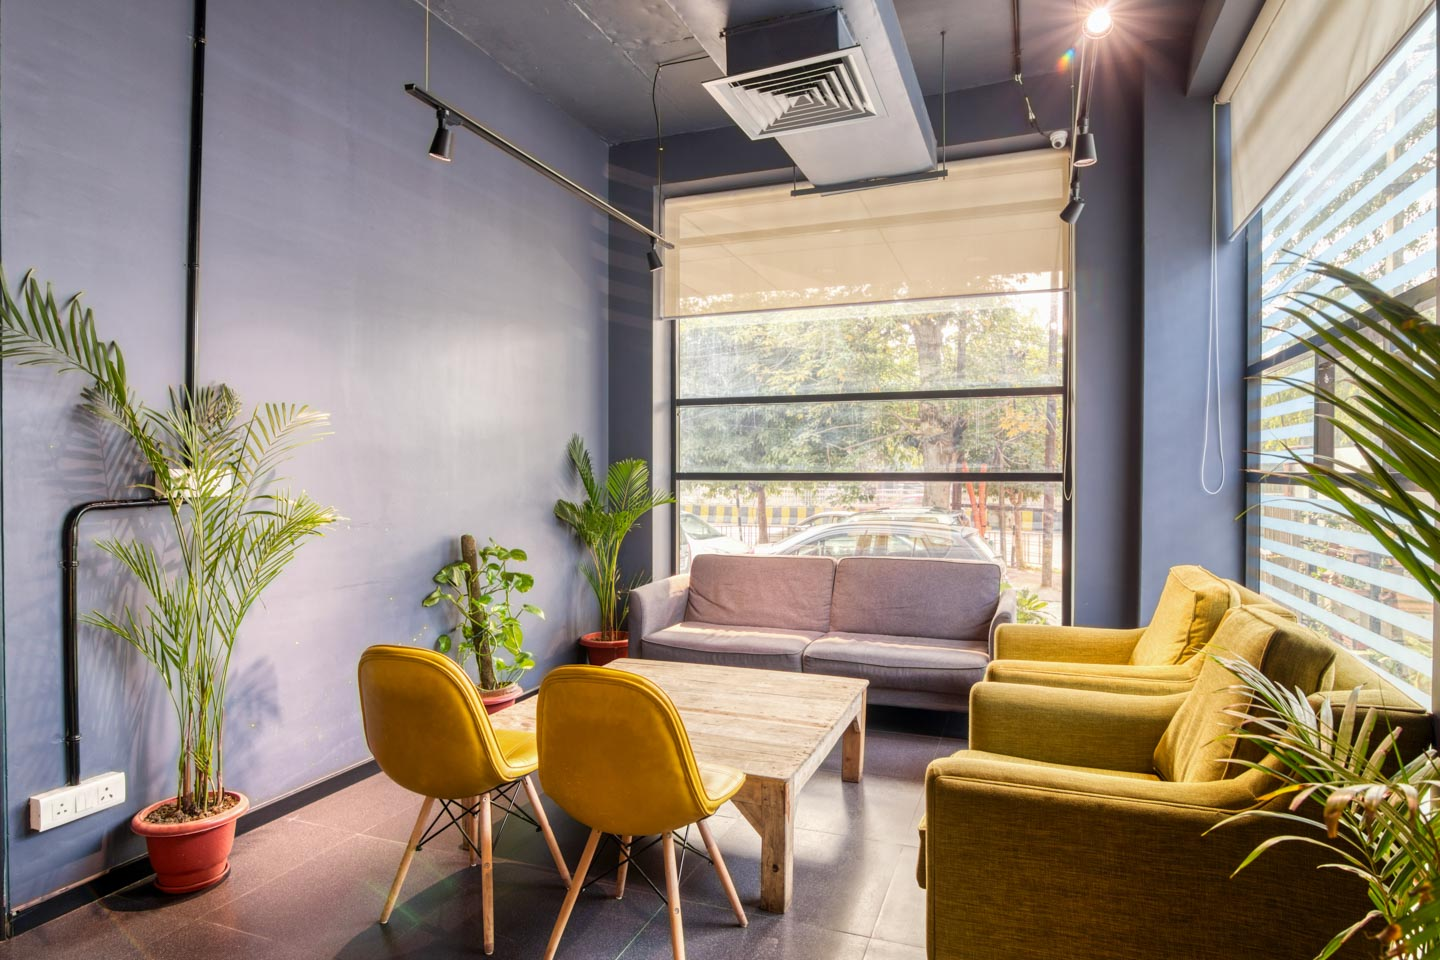 Coworking space in Sector 4, Noida